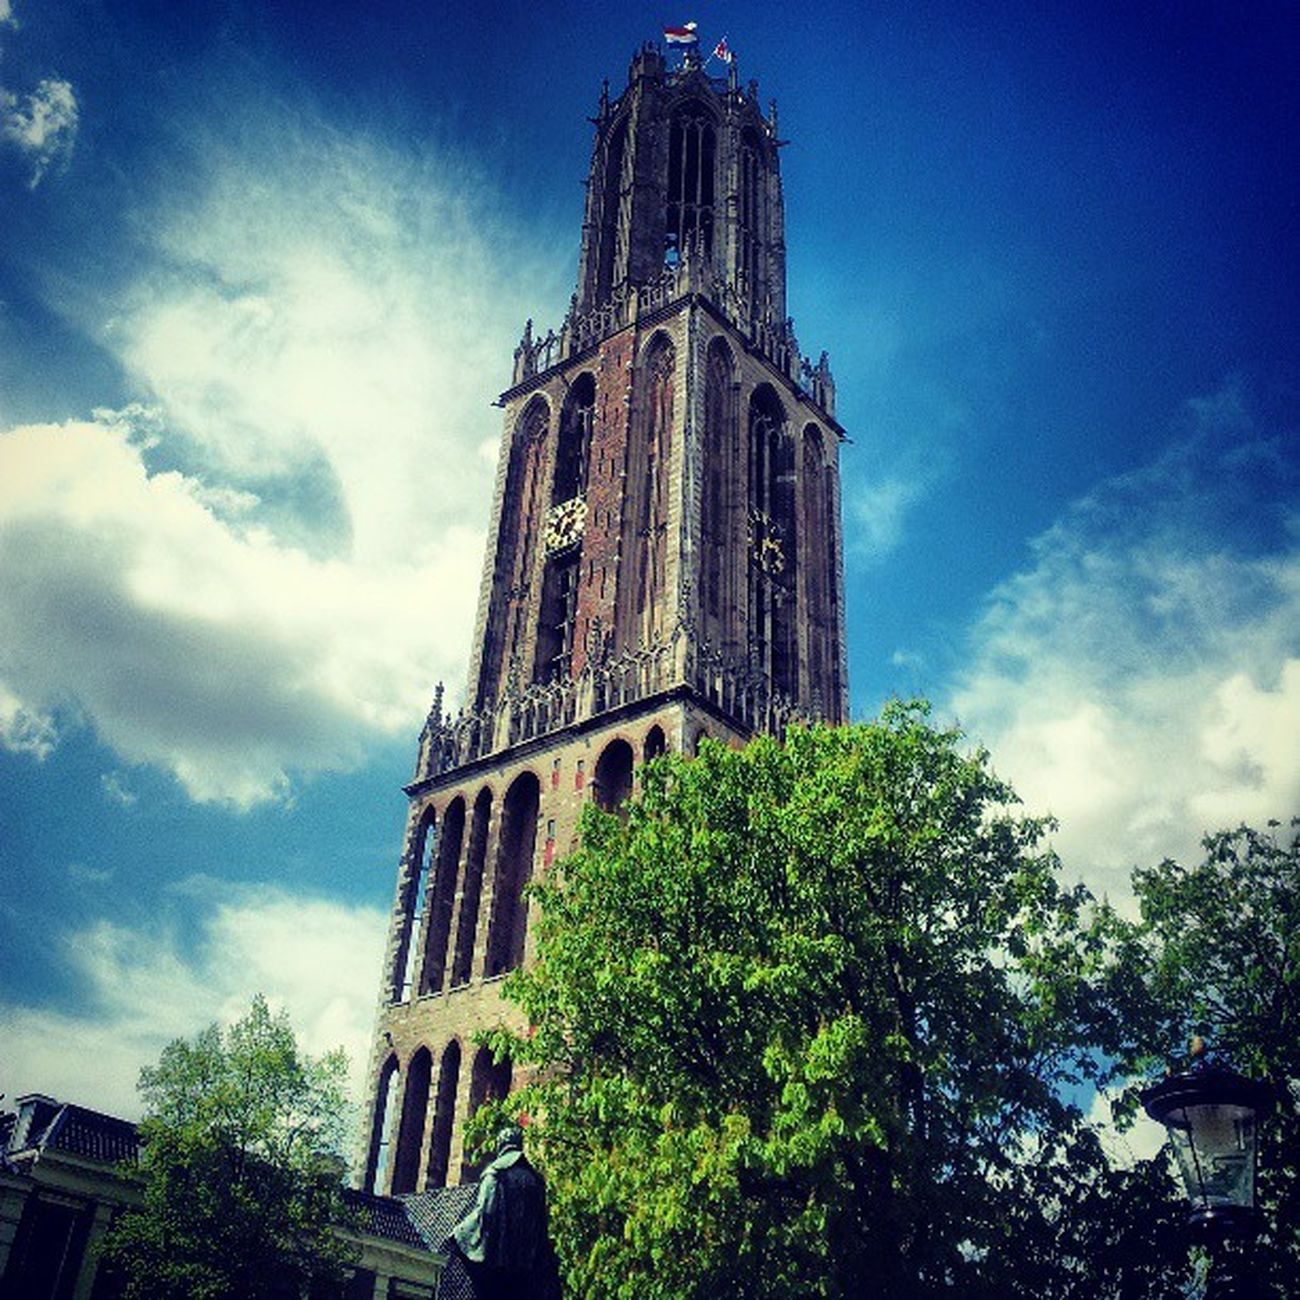 Utrecht Blueskies Summer Cloud Dom Tower Netherlands Instamood Insta_netherlands Expat Tree